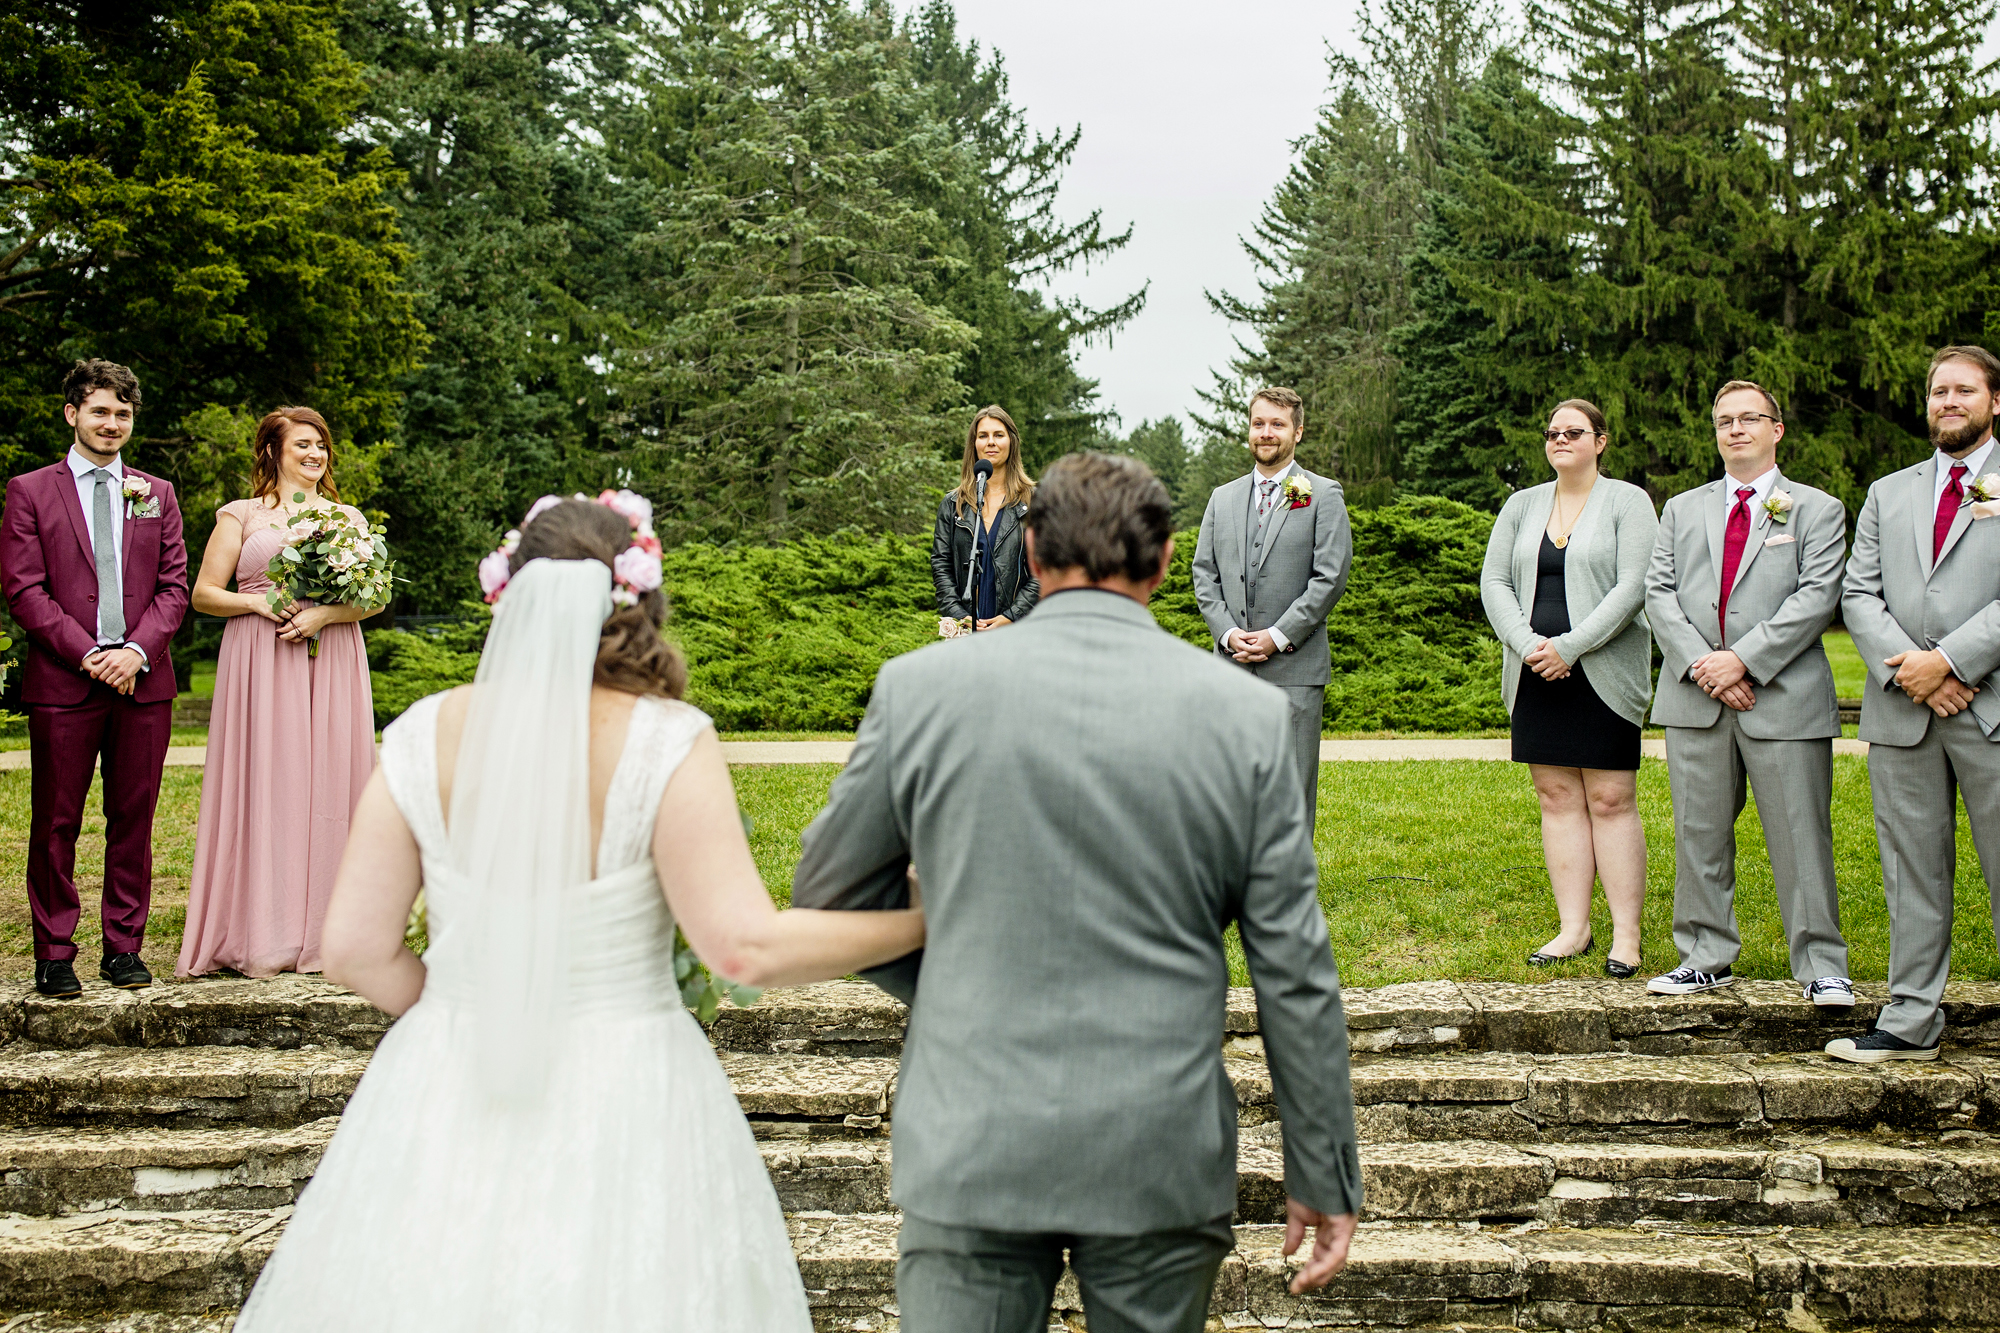 Seriously_Sabrina_Photography_Lisle_Illinois_Morton_Arboretum_Wedding_Day_Gowen65.jpg